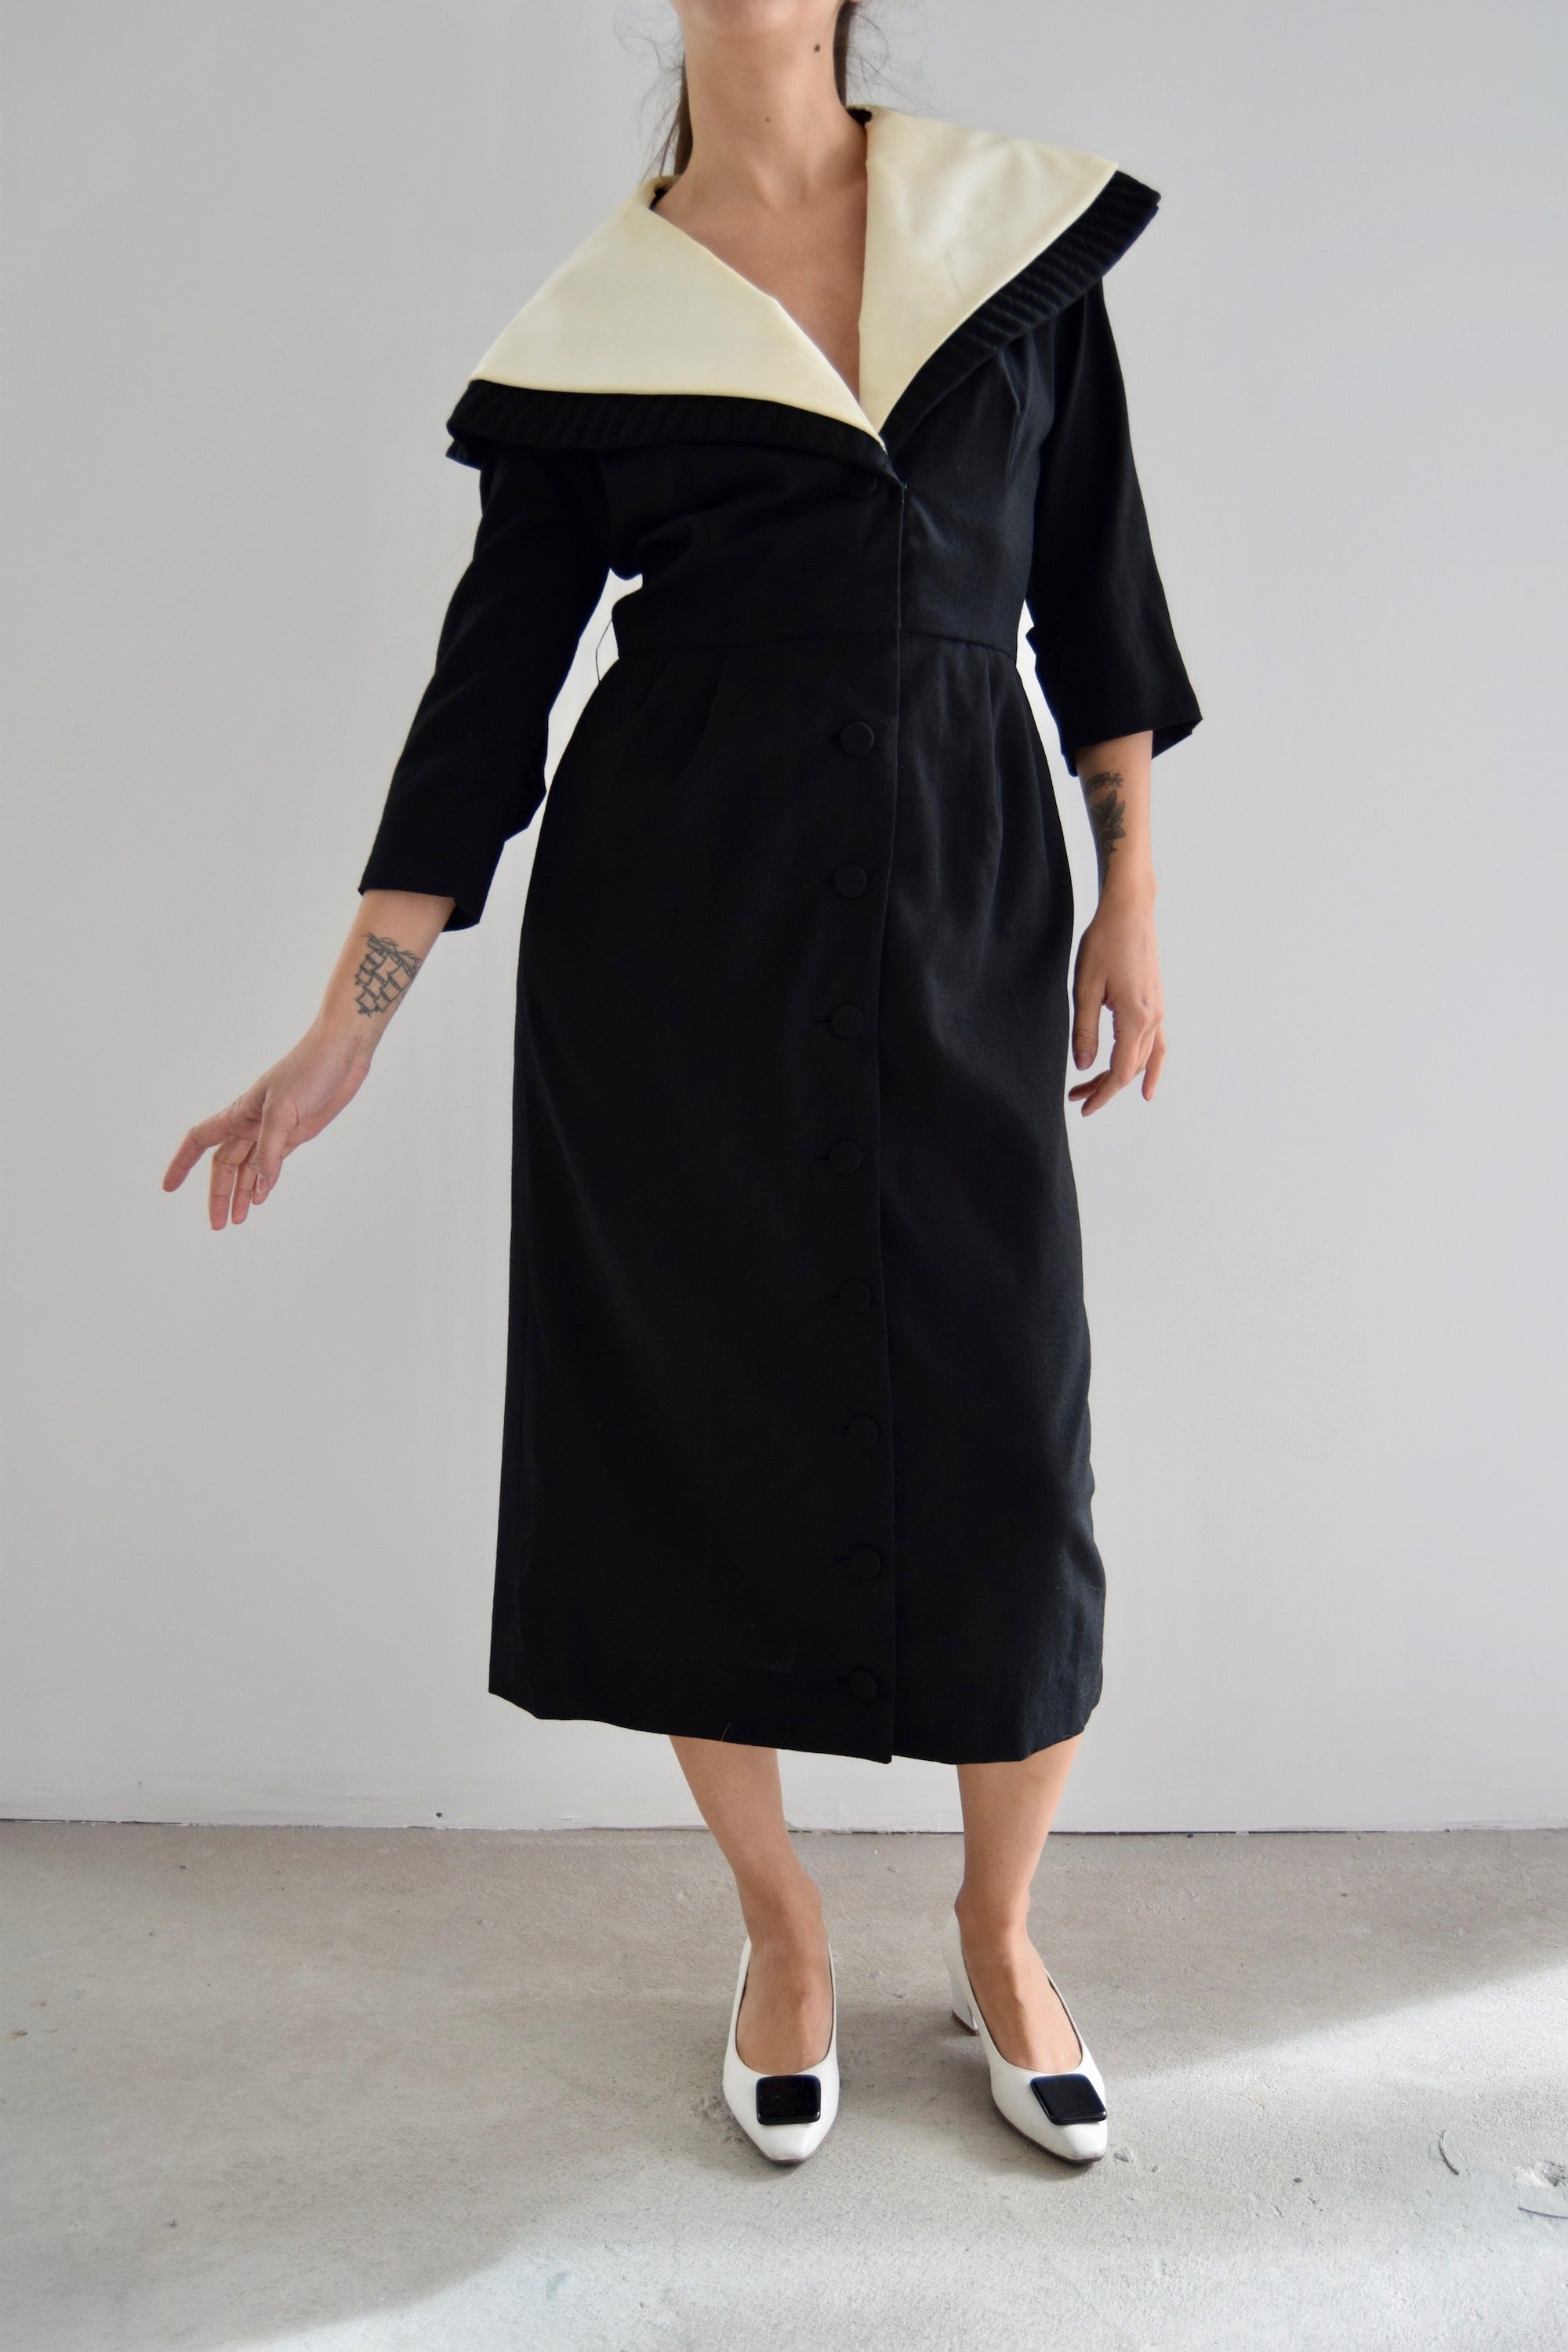 Vintage 50's Lilli Ann Cape Collar Dress